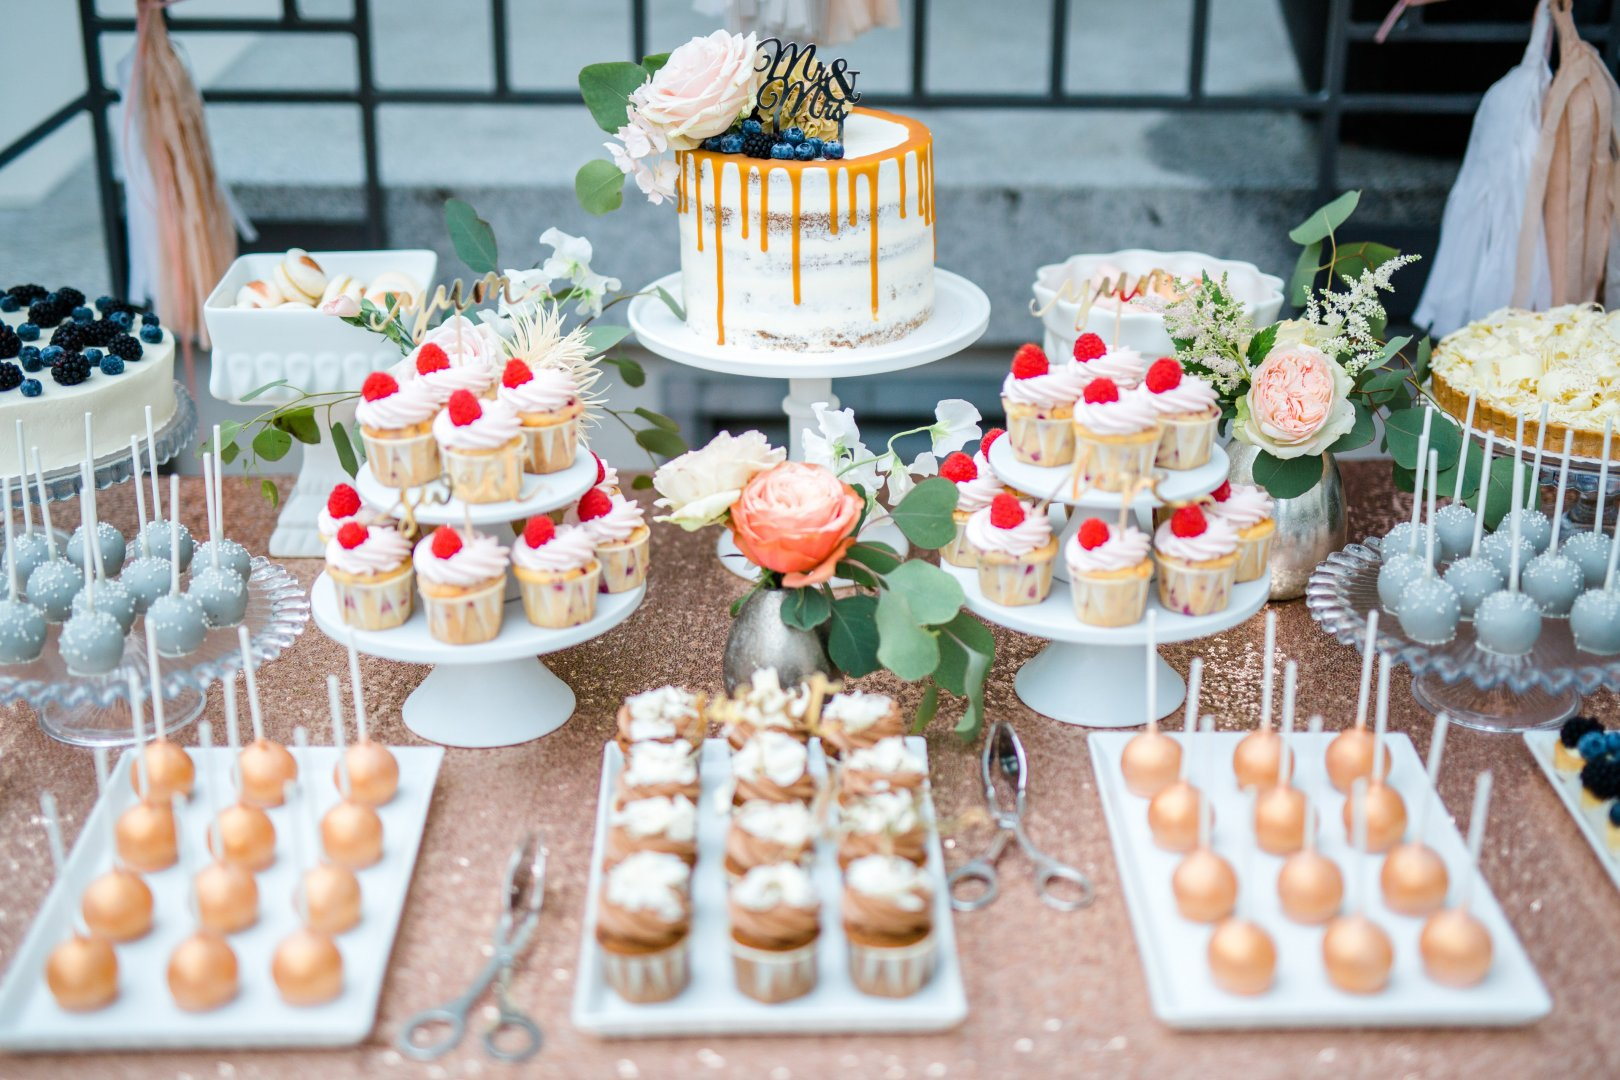 Food Sweetness Brunch Dessert Finger food Cuisine Dish Pâtisserie Buffet Baking Petit four Party Bake sale Table Cake decorating Icing Baked goods Wedding reception Cake Pastry Meal Snack Cream Culinary art Buttercream